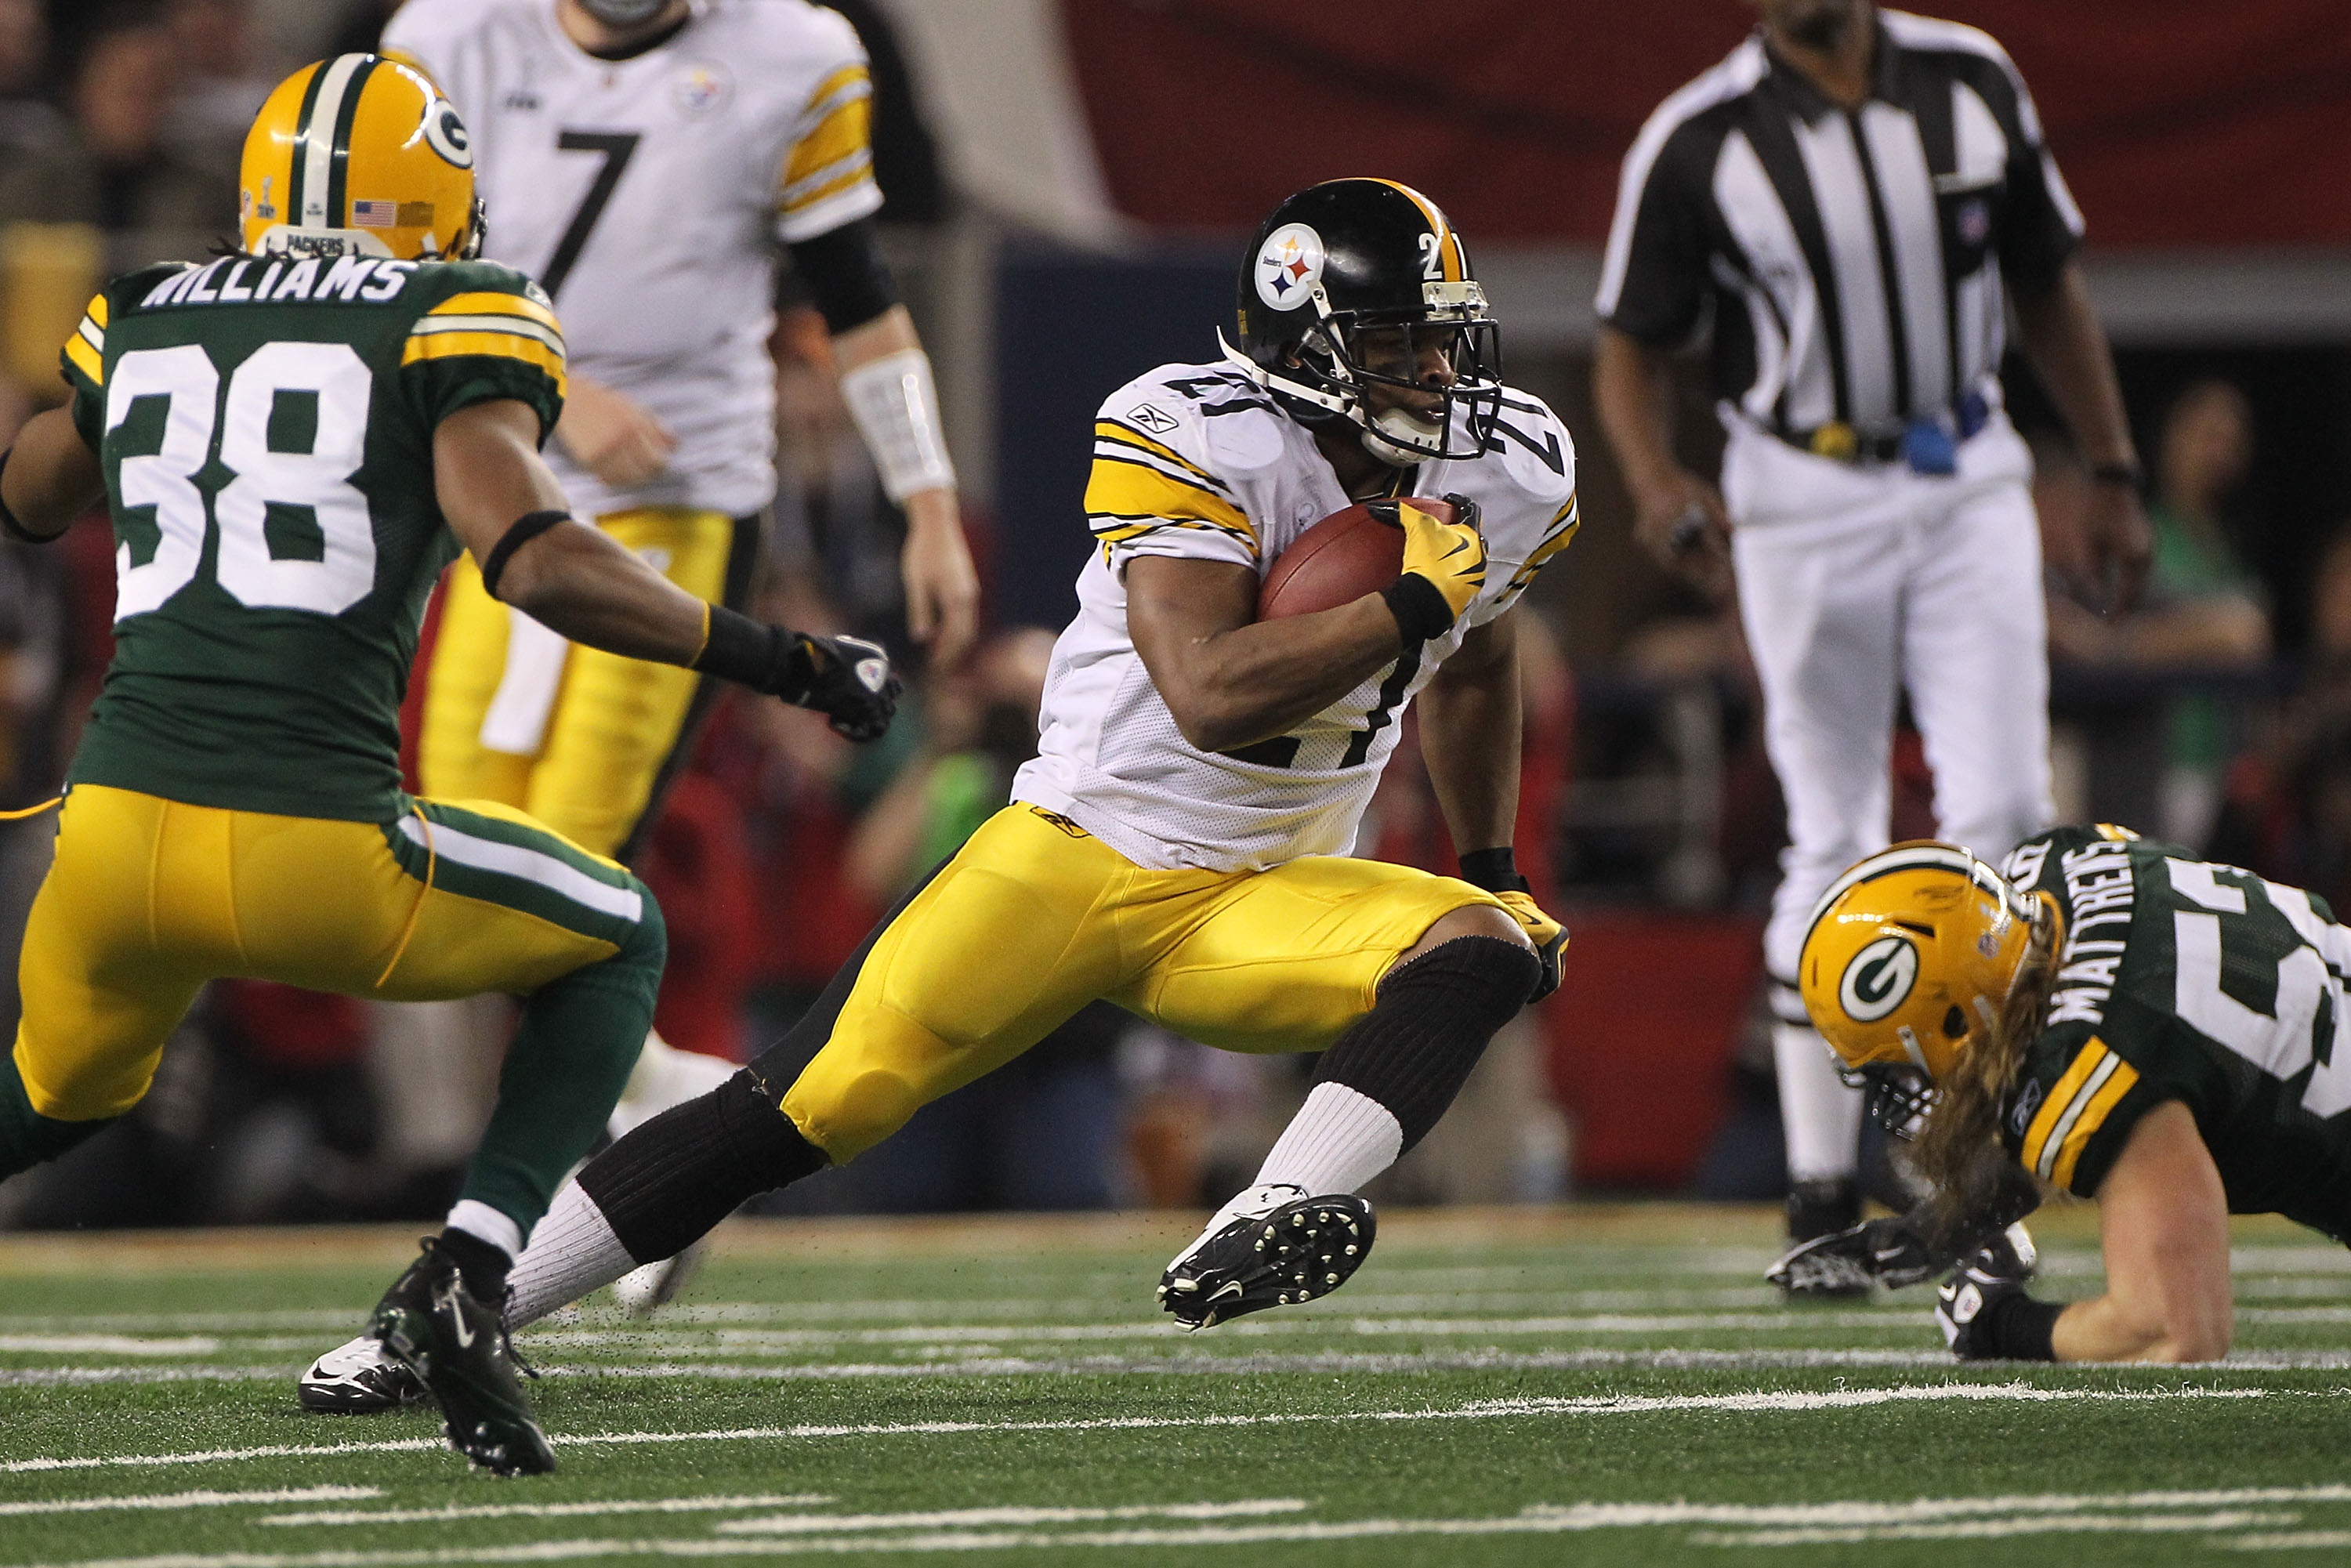 ARLINGTON, TX - FEBRUARY 06:  Mewelde Moore #21 of the Pittsburgh Steelers runs for 7 yards against the Green Bay Packers during the second quarter of Super Bowl XLV at Cowboys Stadium on February 6, 2011 in Arlington, Texas.  (Photo by Doug Pensinger/Get